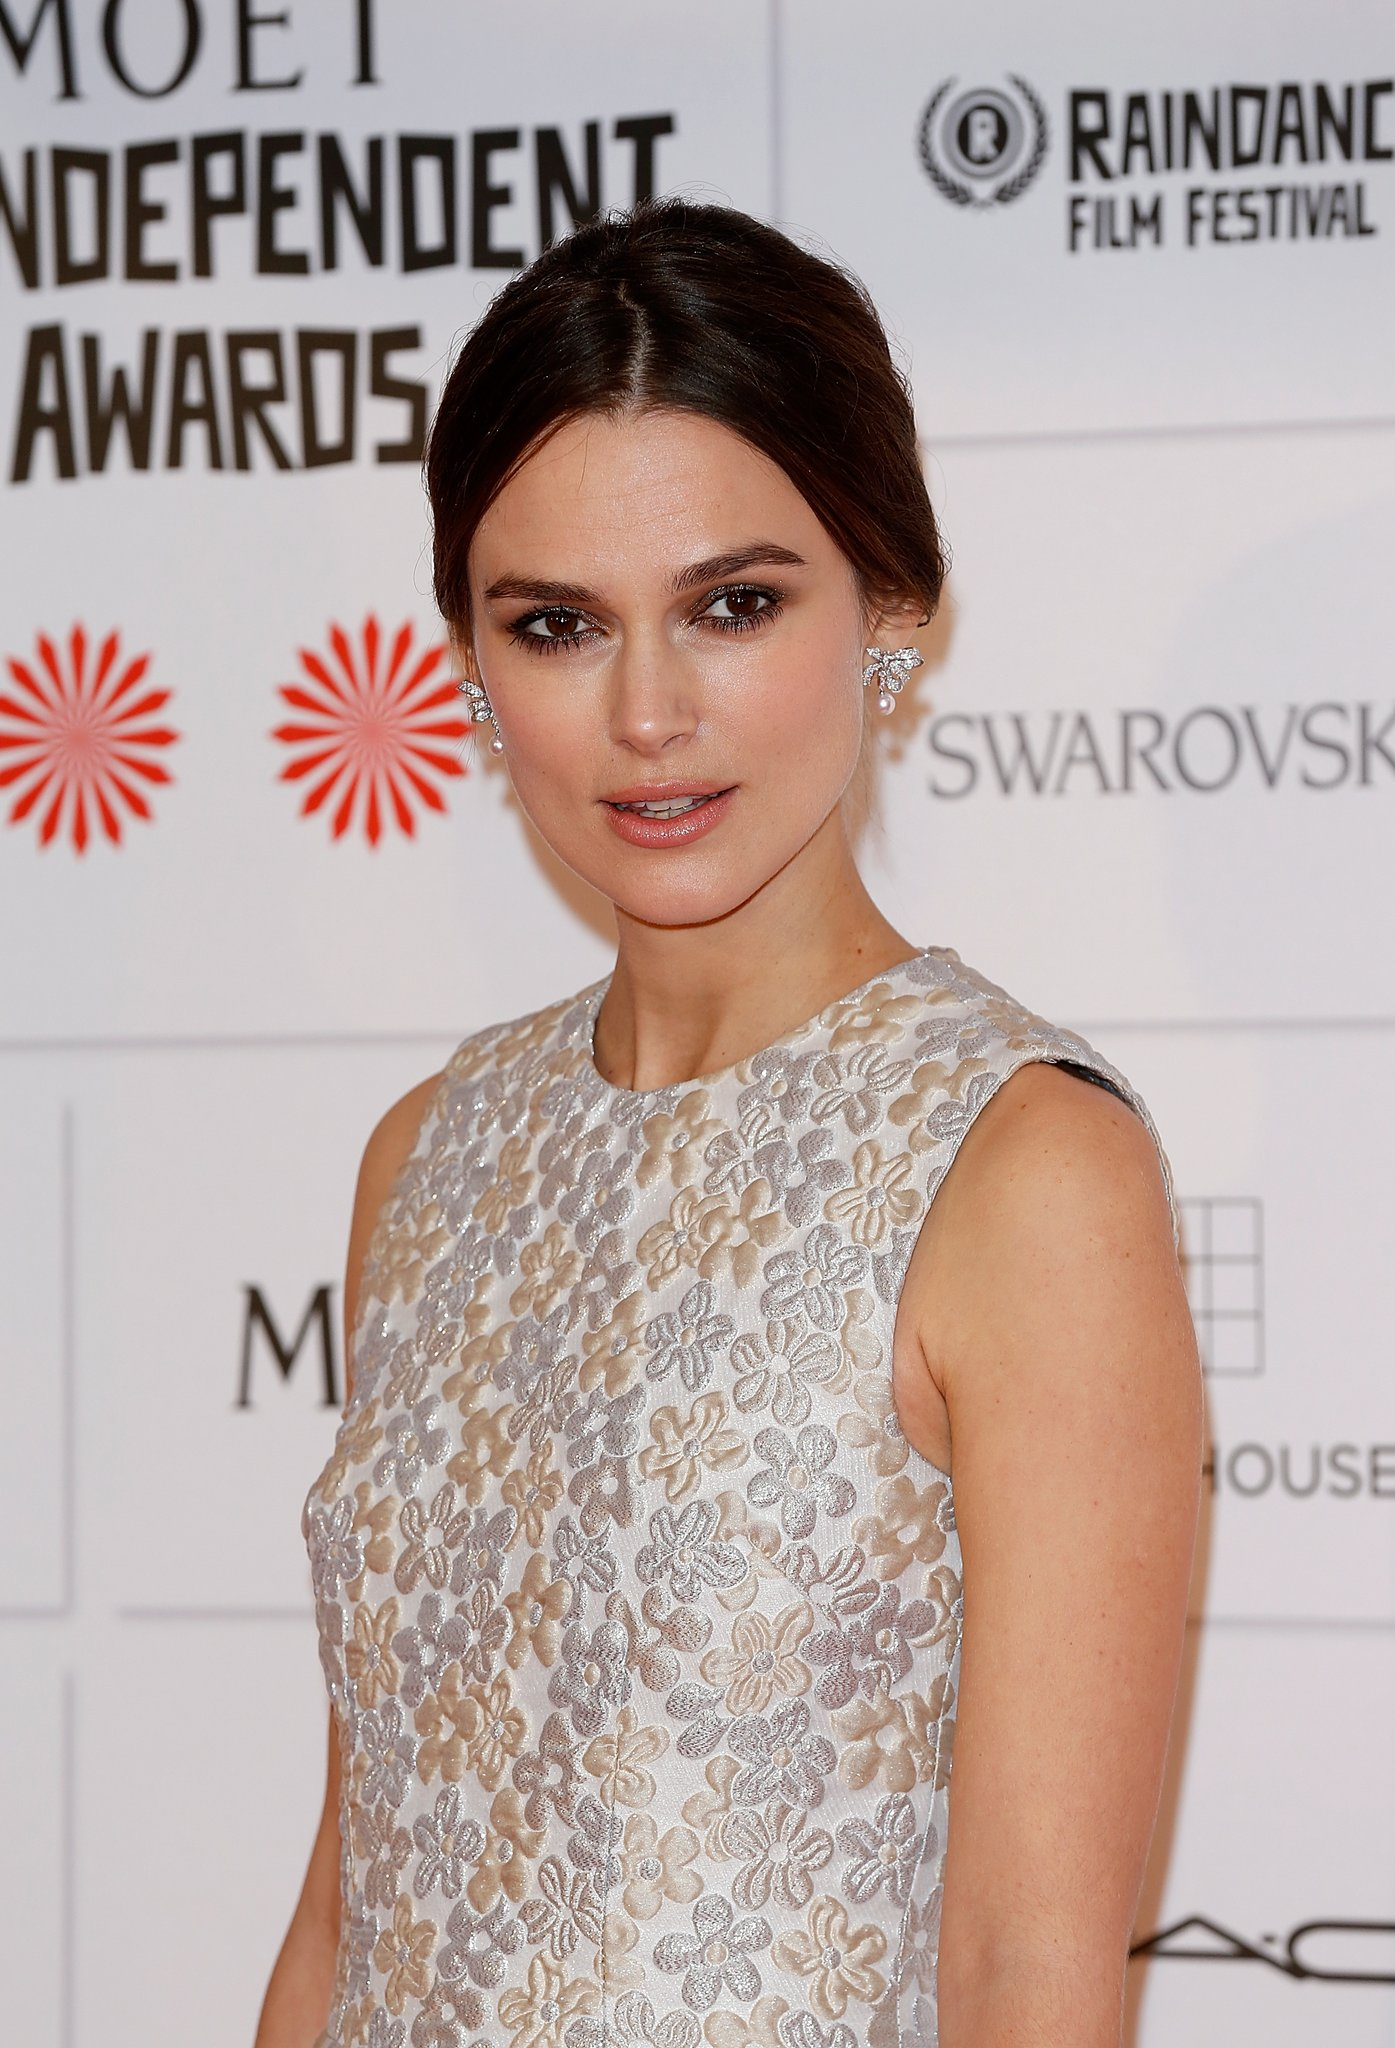 Happy 35th birthday to Keira Knightley, Elizabeth Swan, Colette or whoever you may know her as!